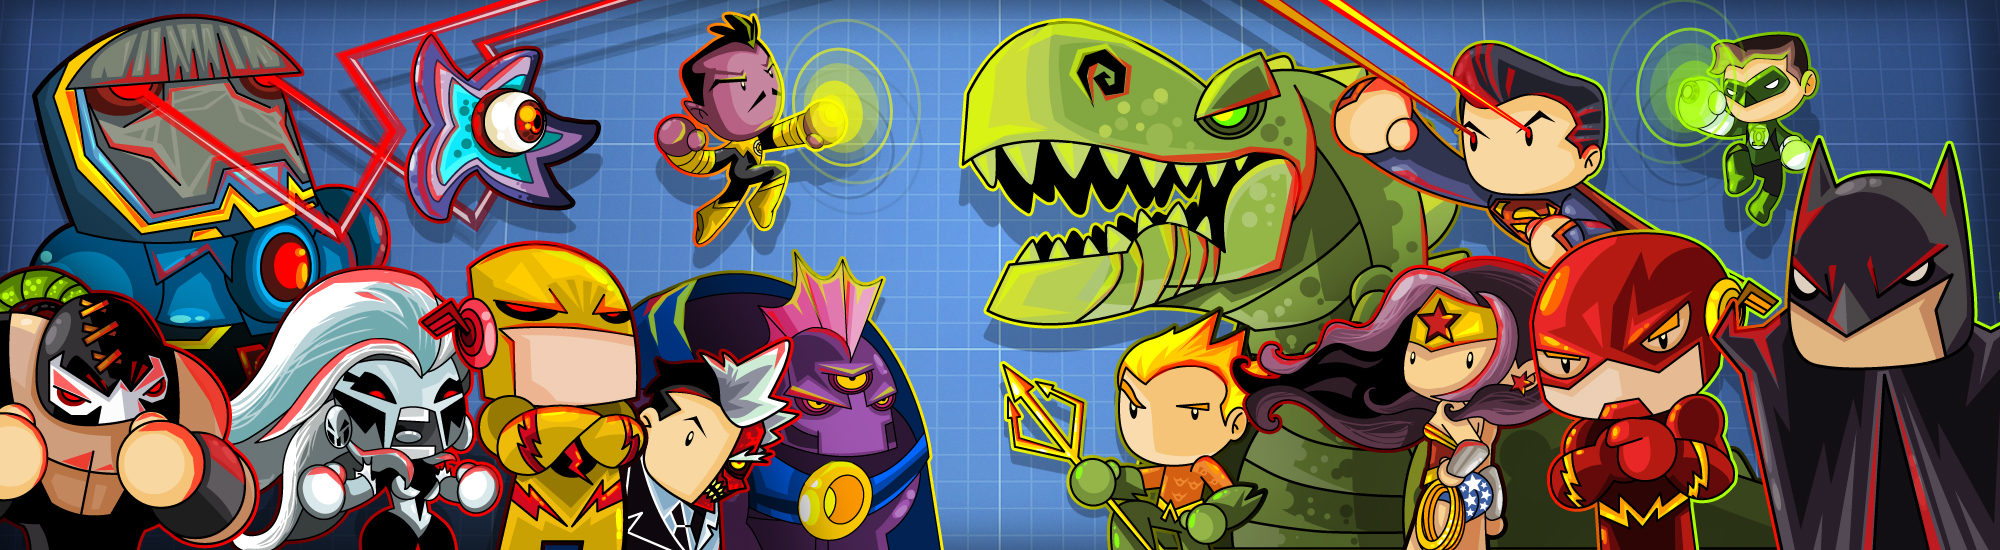 Scribblenauts Unmasked Contest by vancamelot